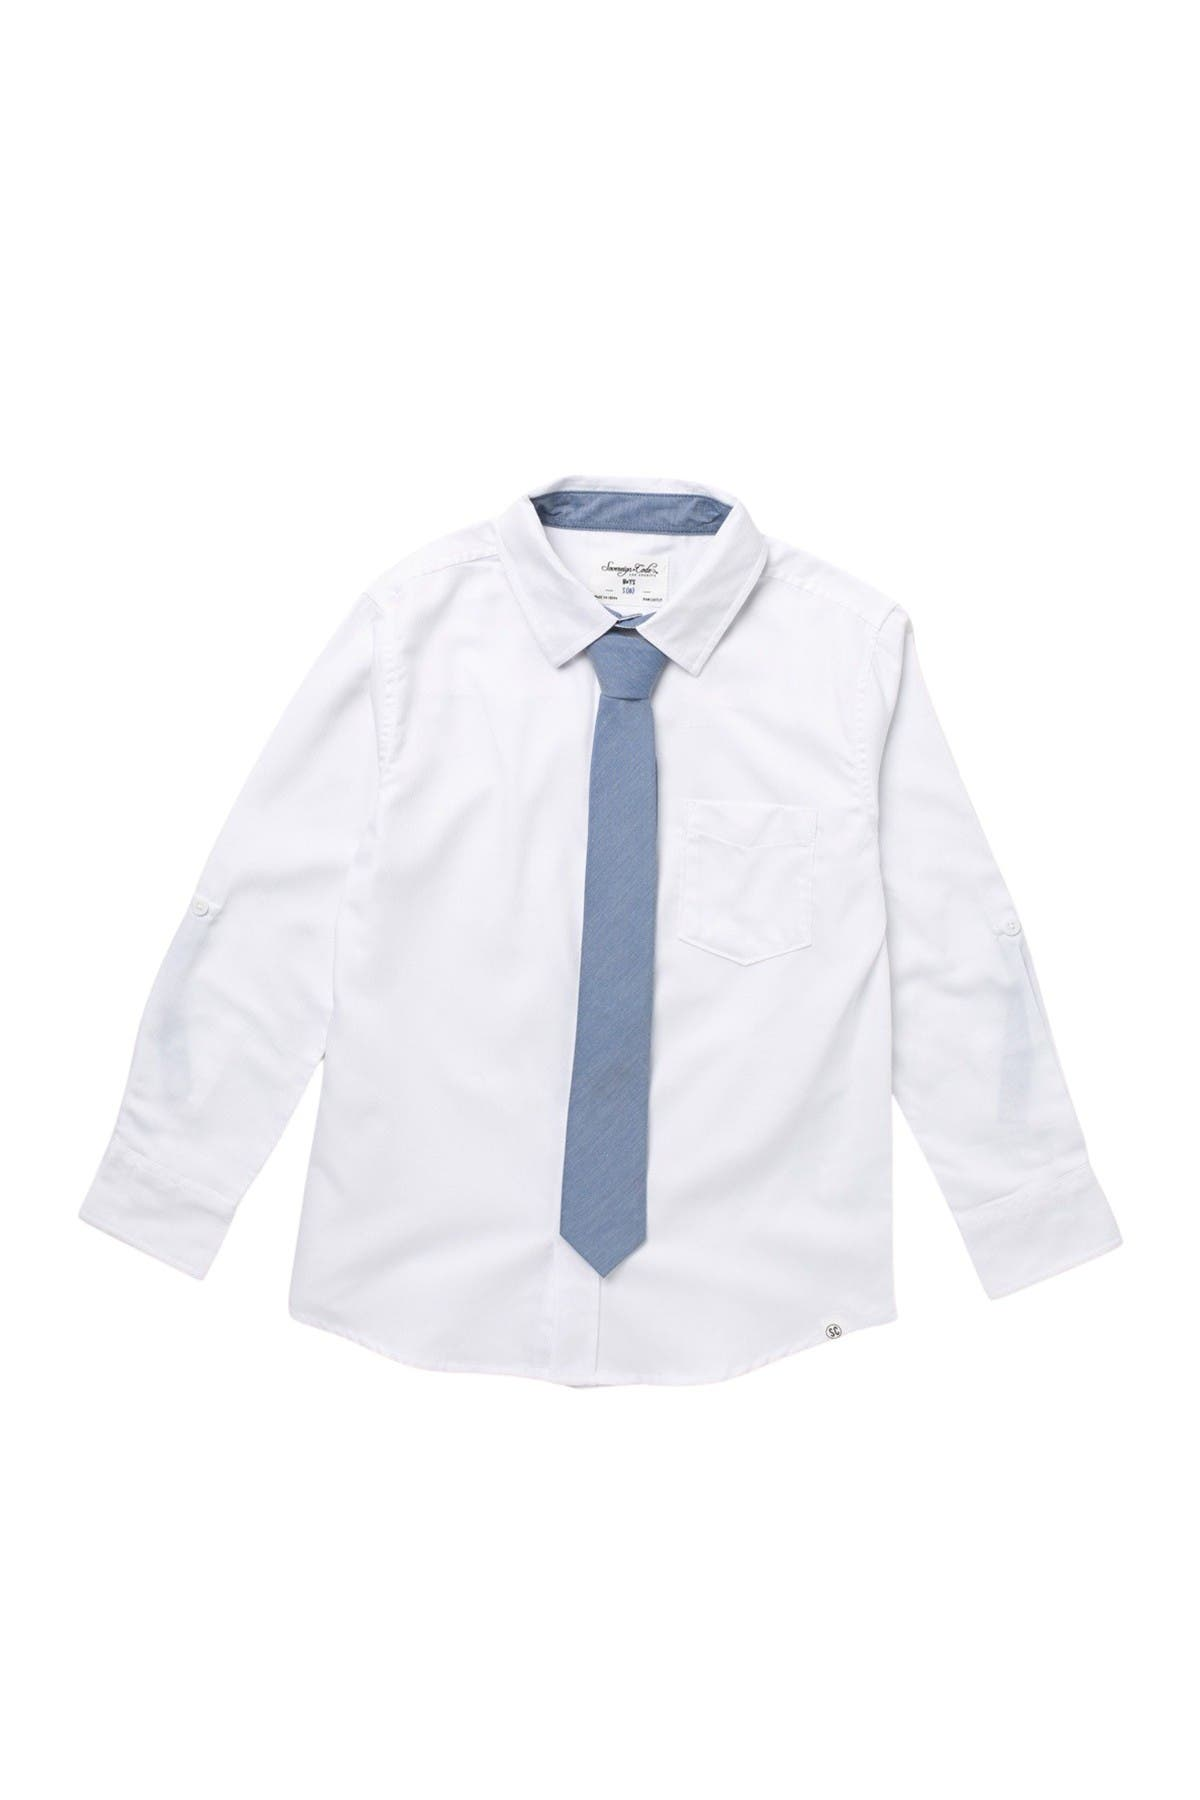 Image of Sovereign Code Solid Shirt & Tie Set